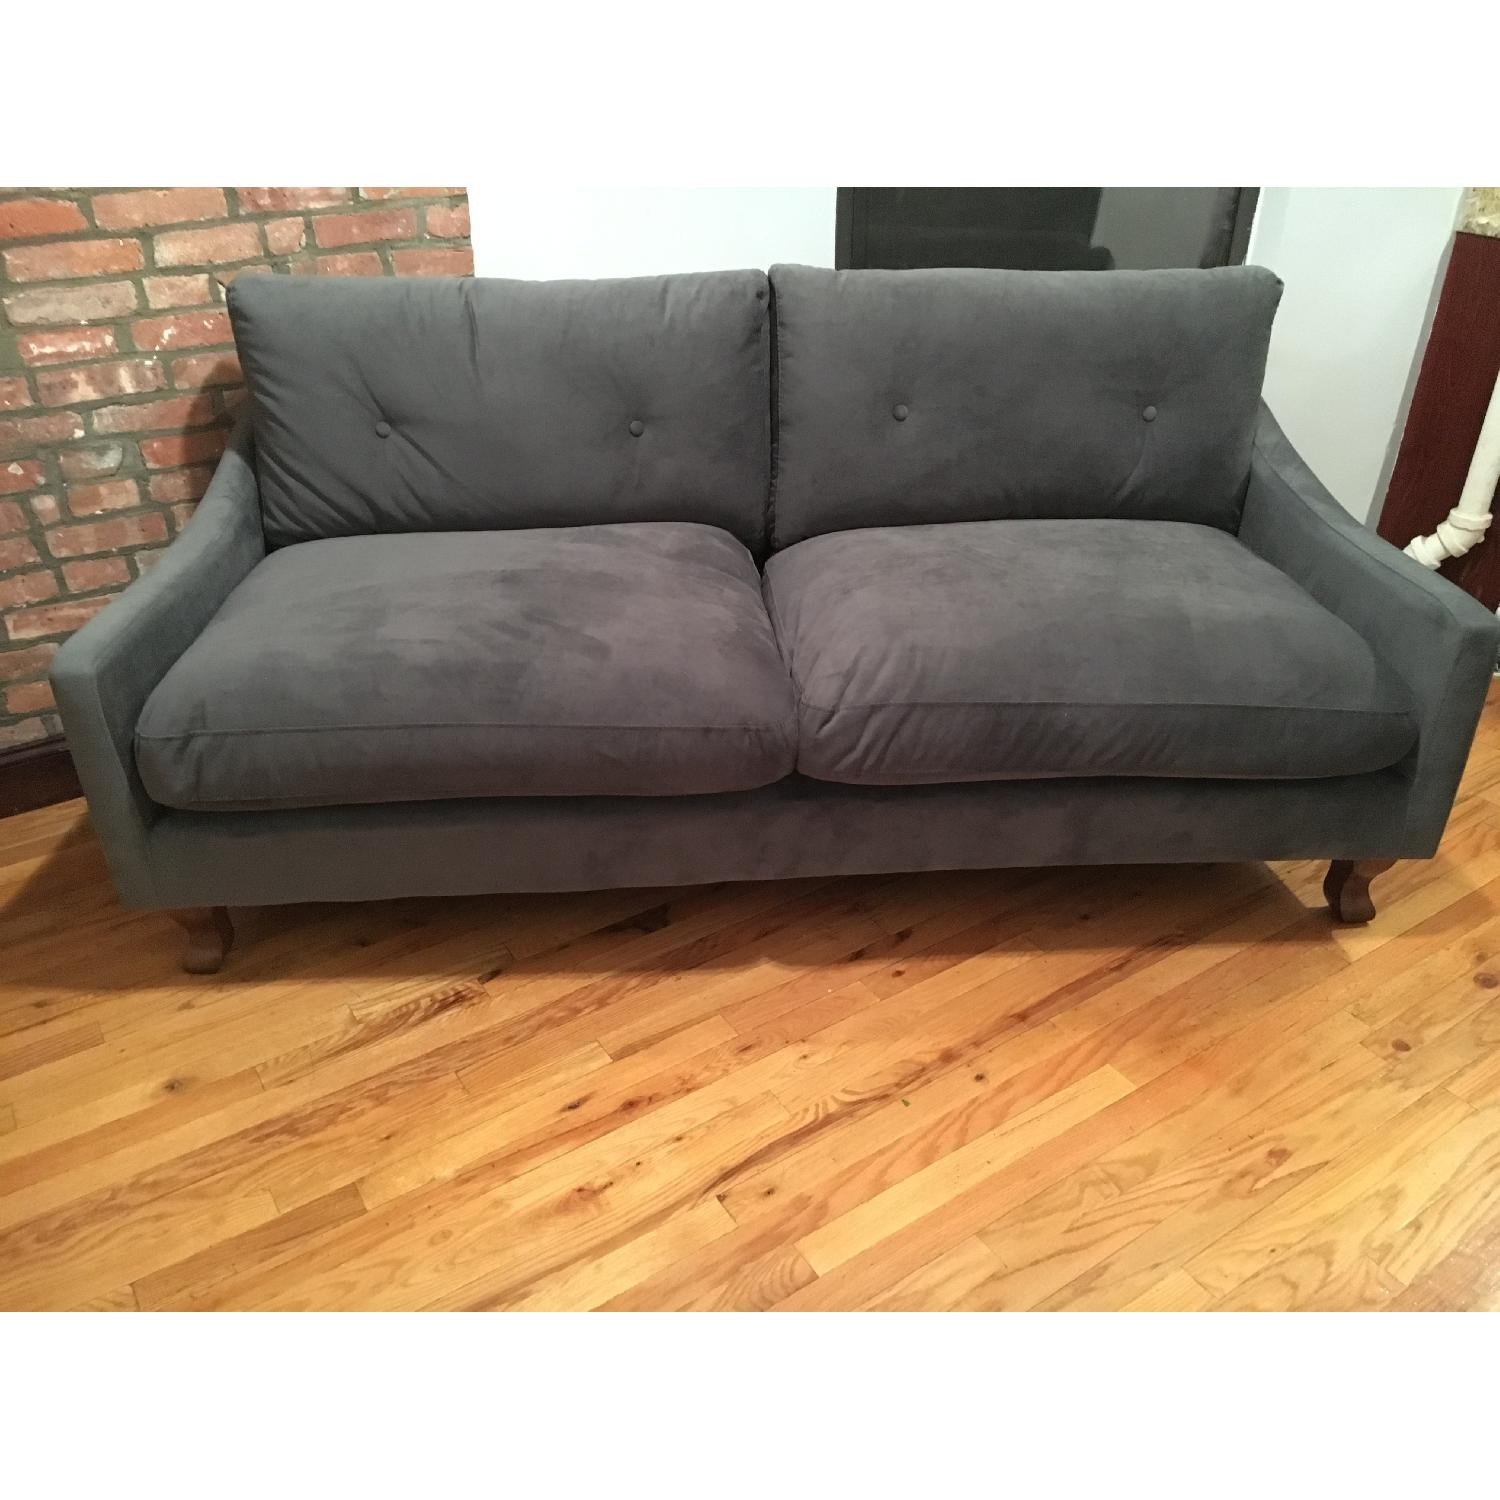 Urban Outfitters Annette Sofa - image-1